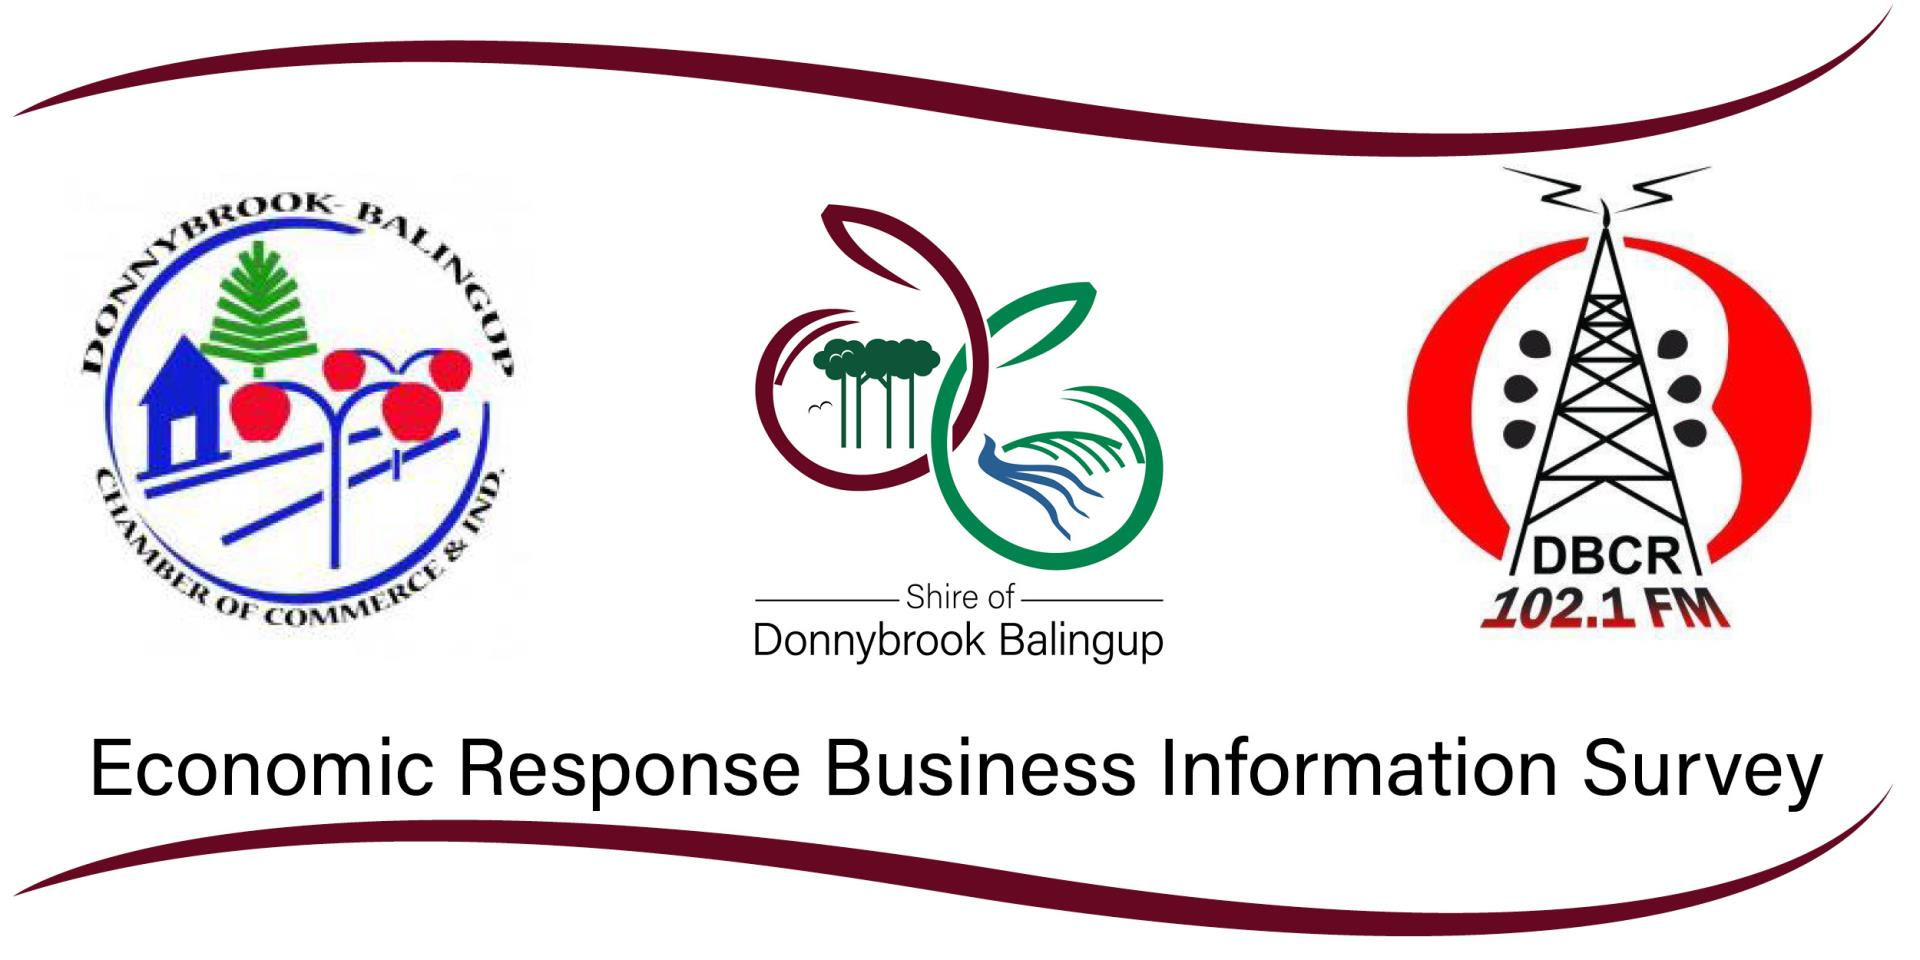 Economic Response Business Information Survey